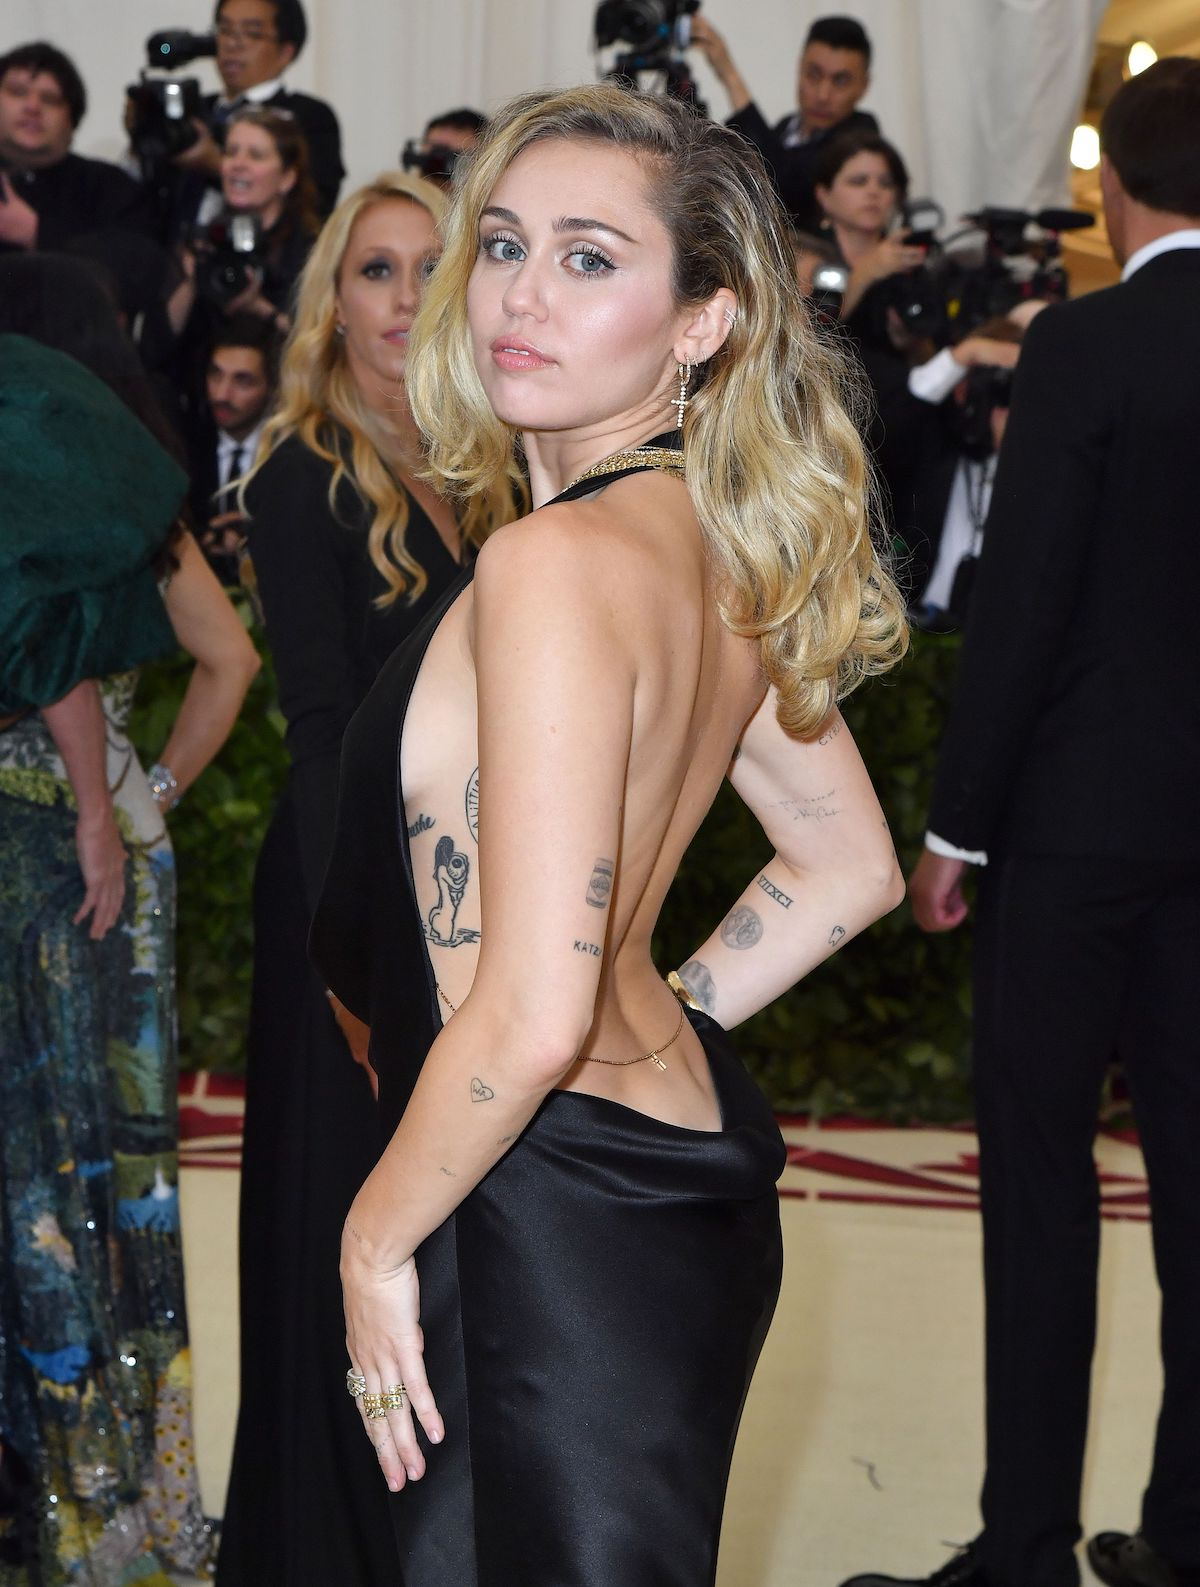 Miley Cyrus arrives for the 2018 Met Gala on May 7, 2018, at the Metropolitan Museum of Art in New York. - The Gala raises money for the Metropolitan Museum of Arts Costume Institute. The Gala's 2018 theme is Heavenly Bodies: Fashion and the Catholic Imagination. (Photo credit: ANGELA WEISS/AFP/Getty Images)